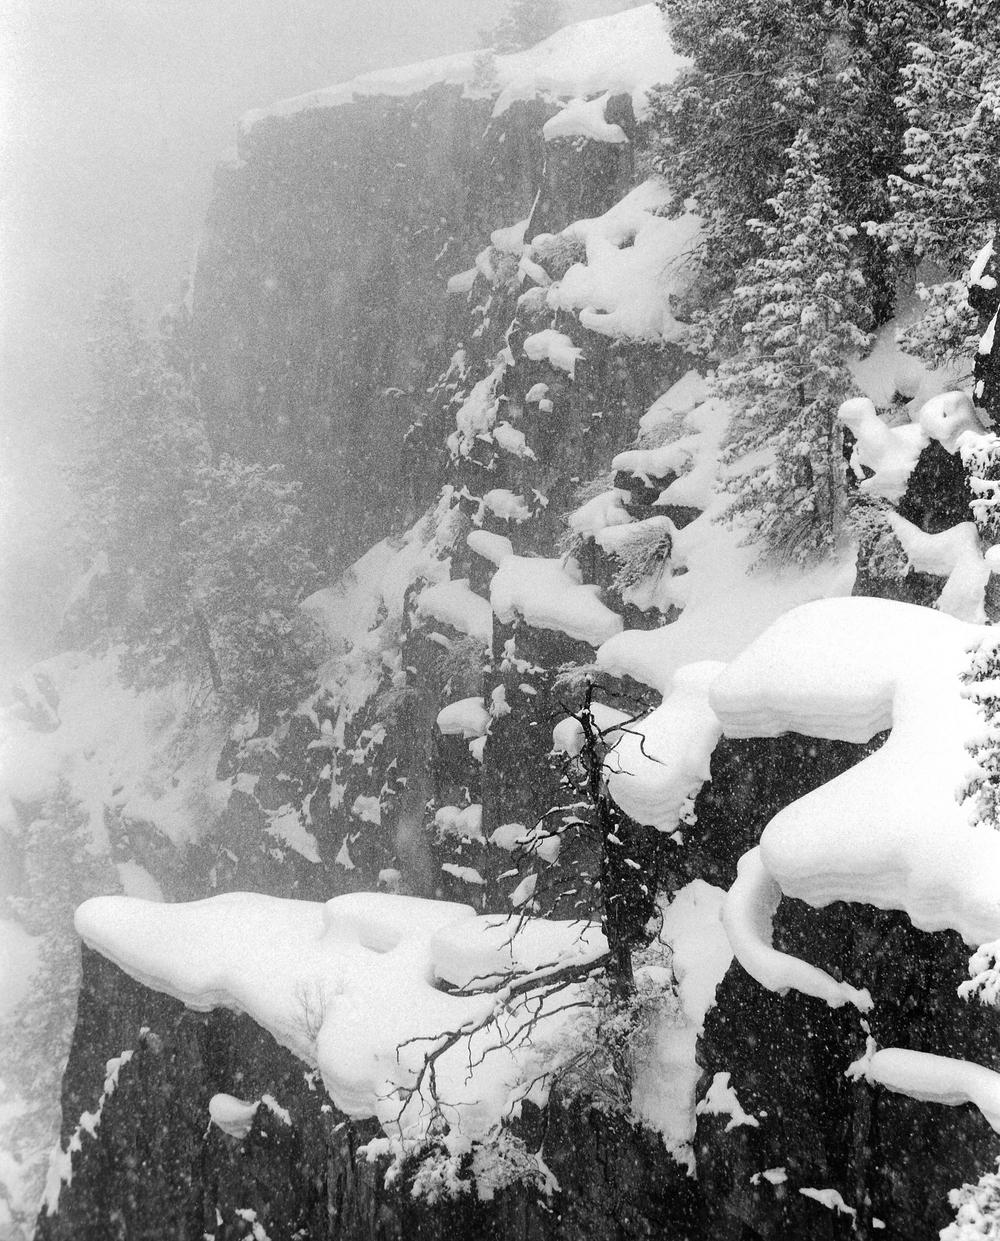 Snow Storm in Black Canyon of the Gunnison